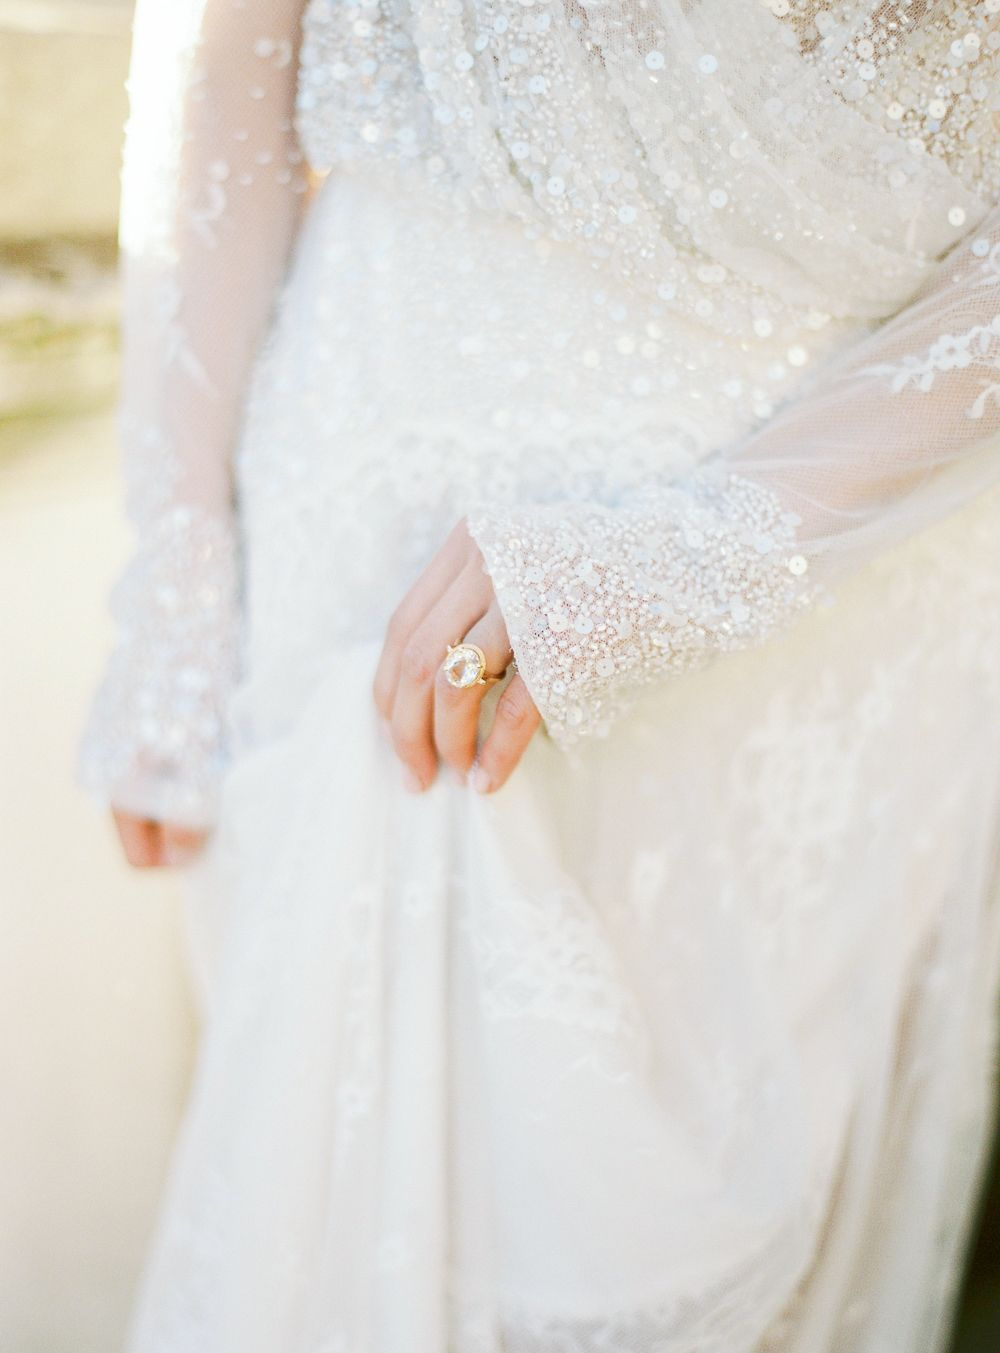 018Julie-Michaelsen-Photography_OnceWed